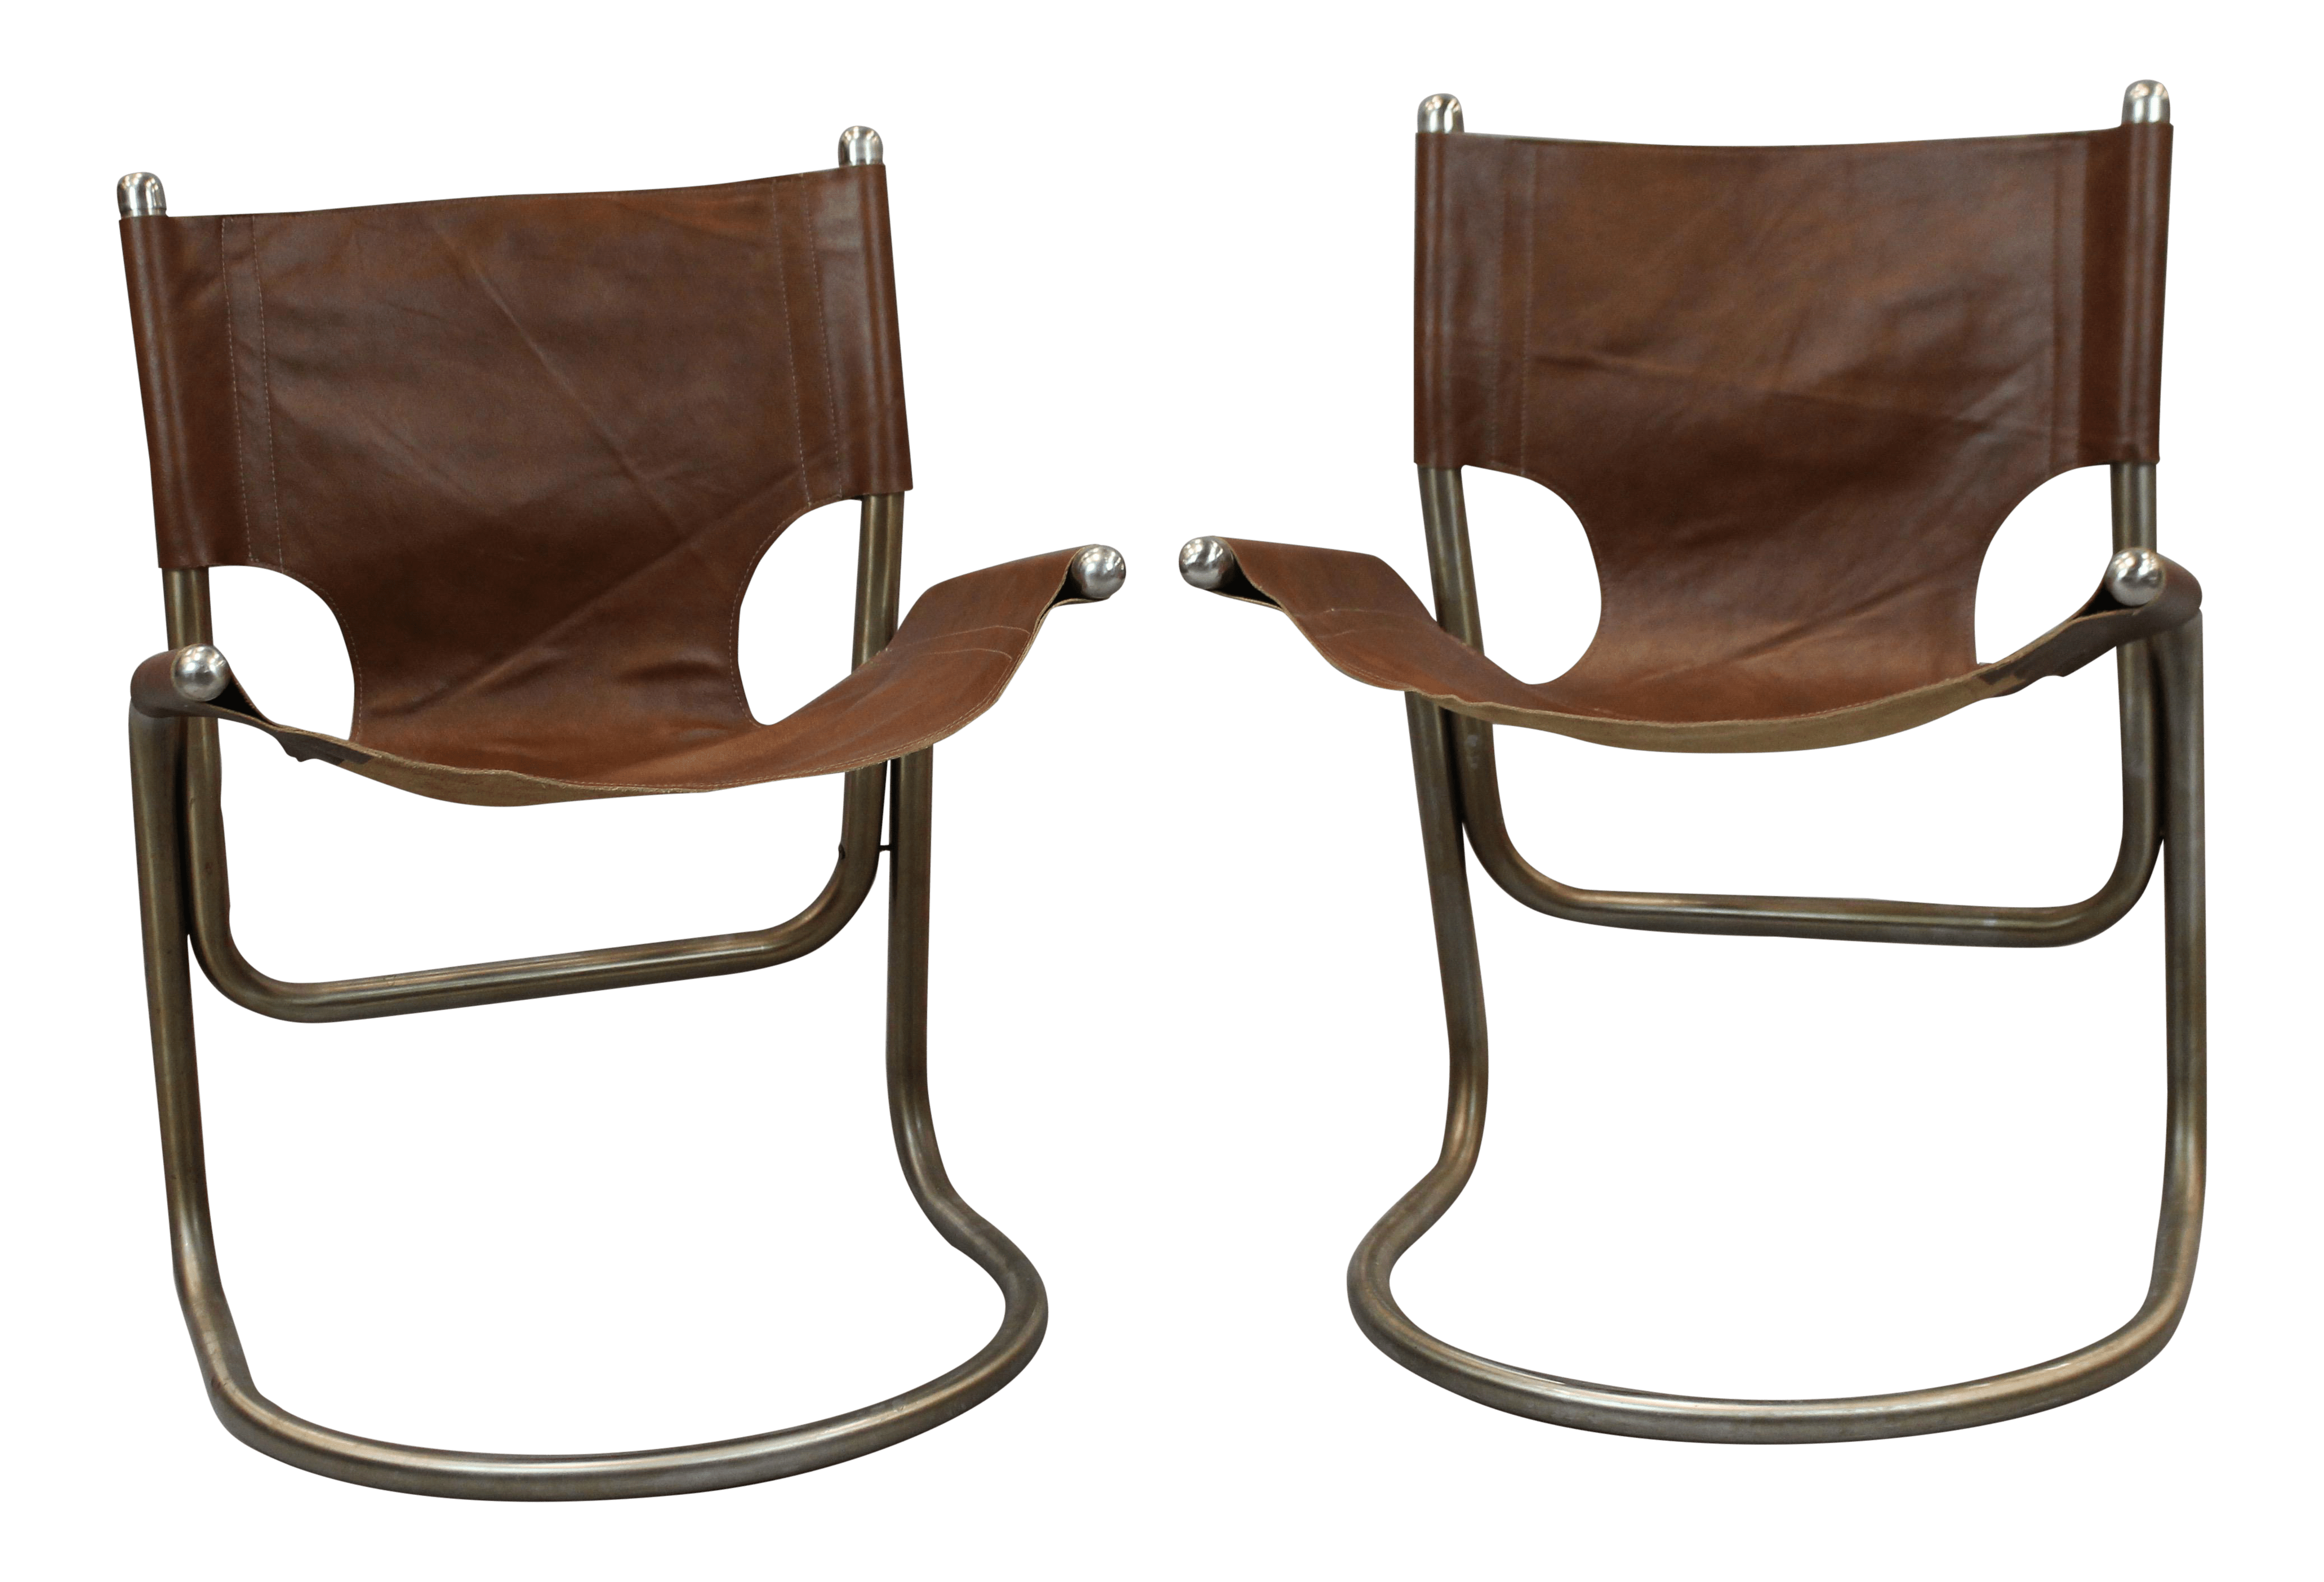 oversized aluminum rocking chair land of nod high mid-century italian leather & chairs - a pair   chairish